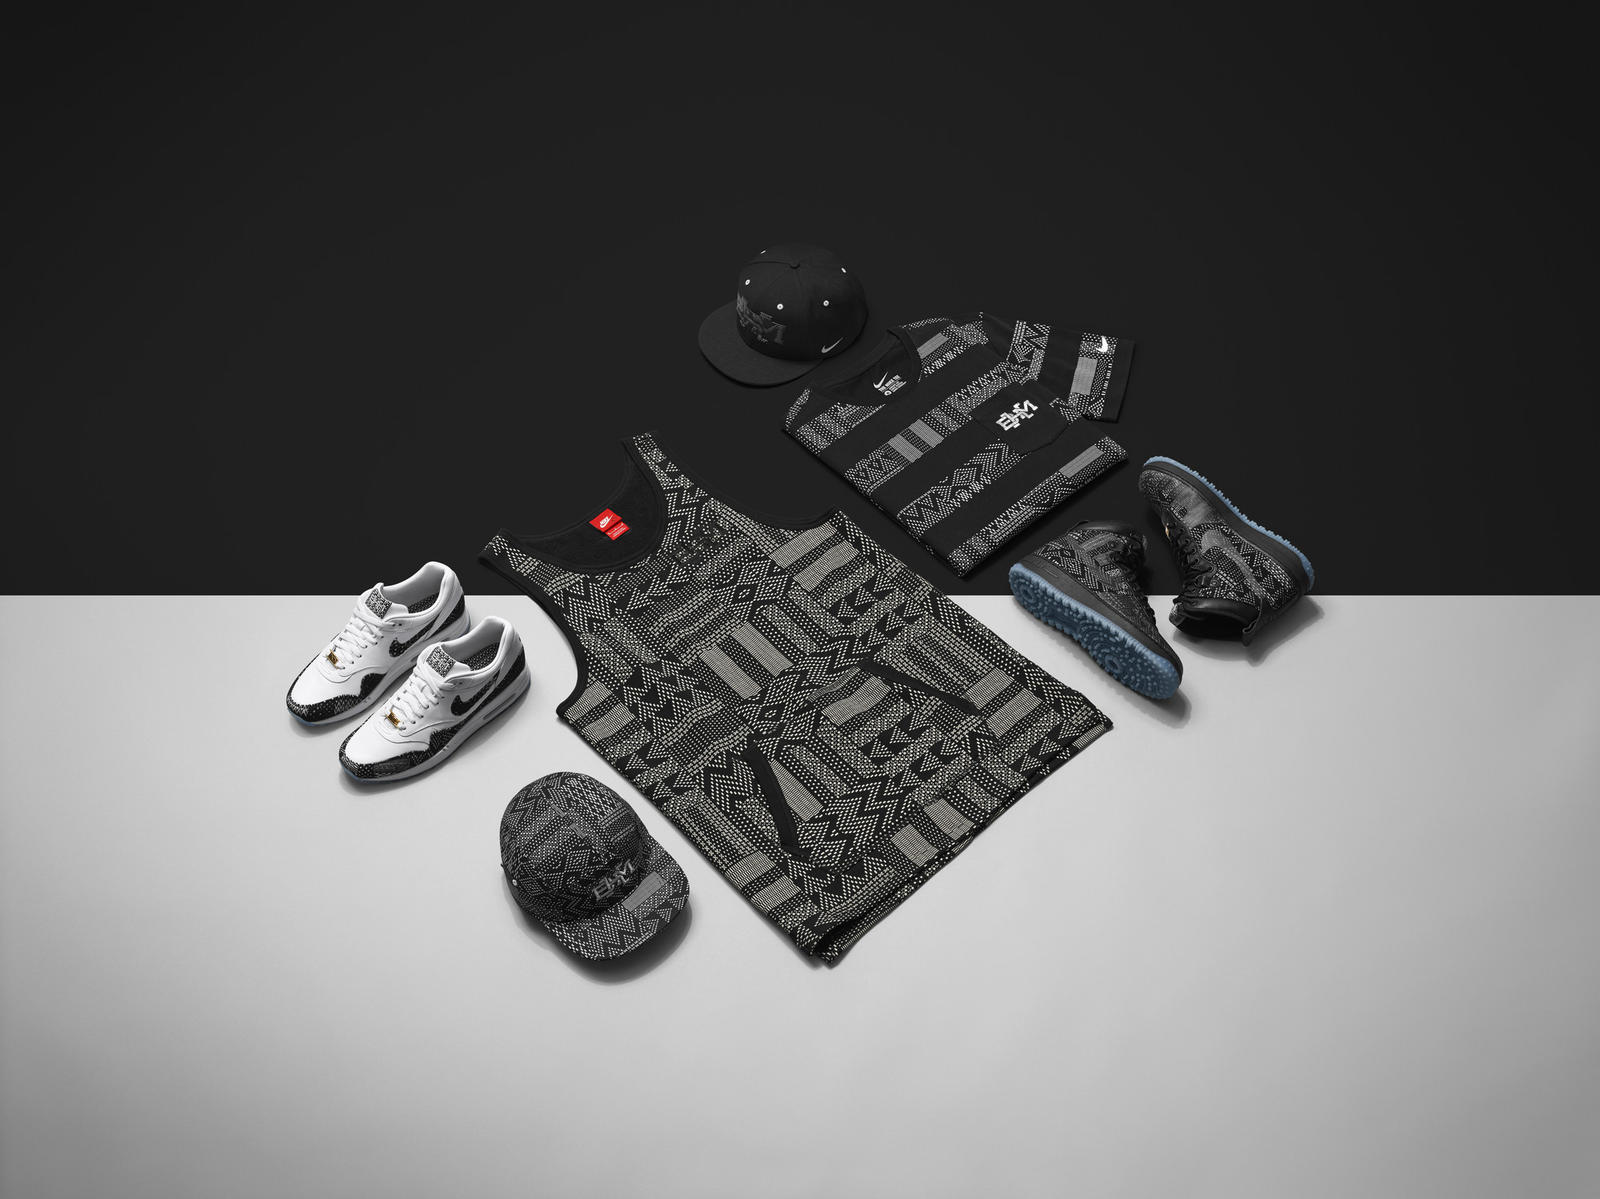 5f349fd5c05 Nike SP15 BHM JORDAN HERO COLLECTION Final. Jordan Brand Black History Month  product featuring the new BHM prints.  Nike SP15 BHM NSW MENS COLLECTION Final